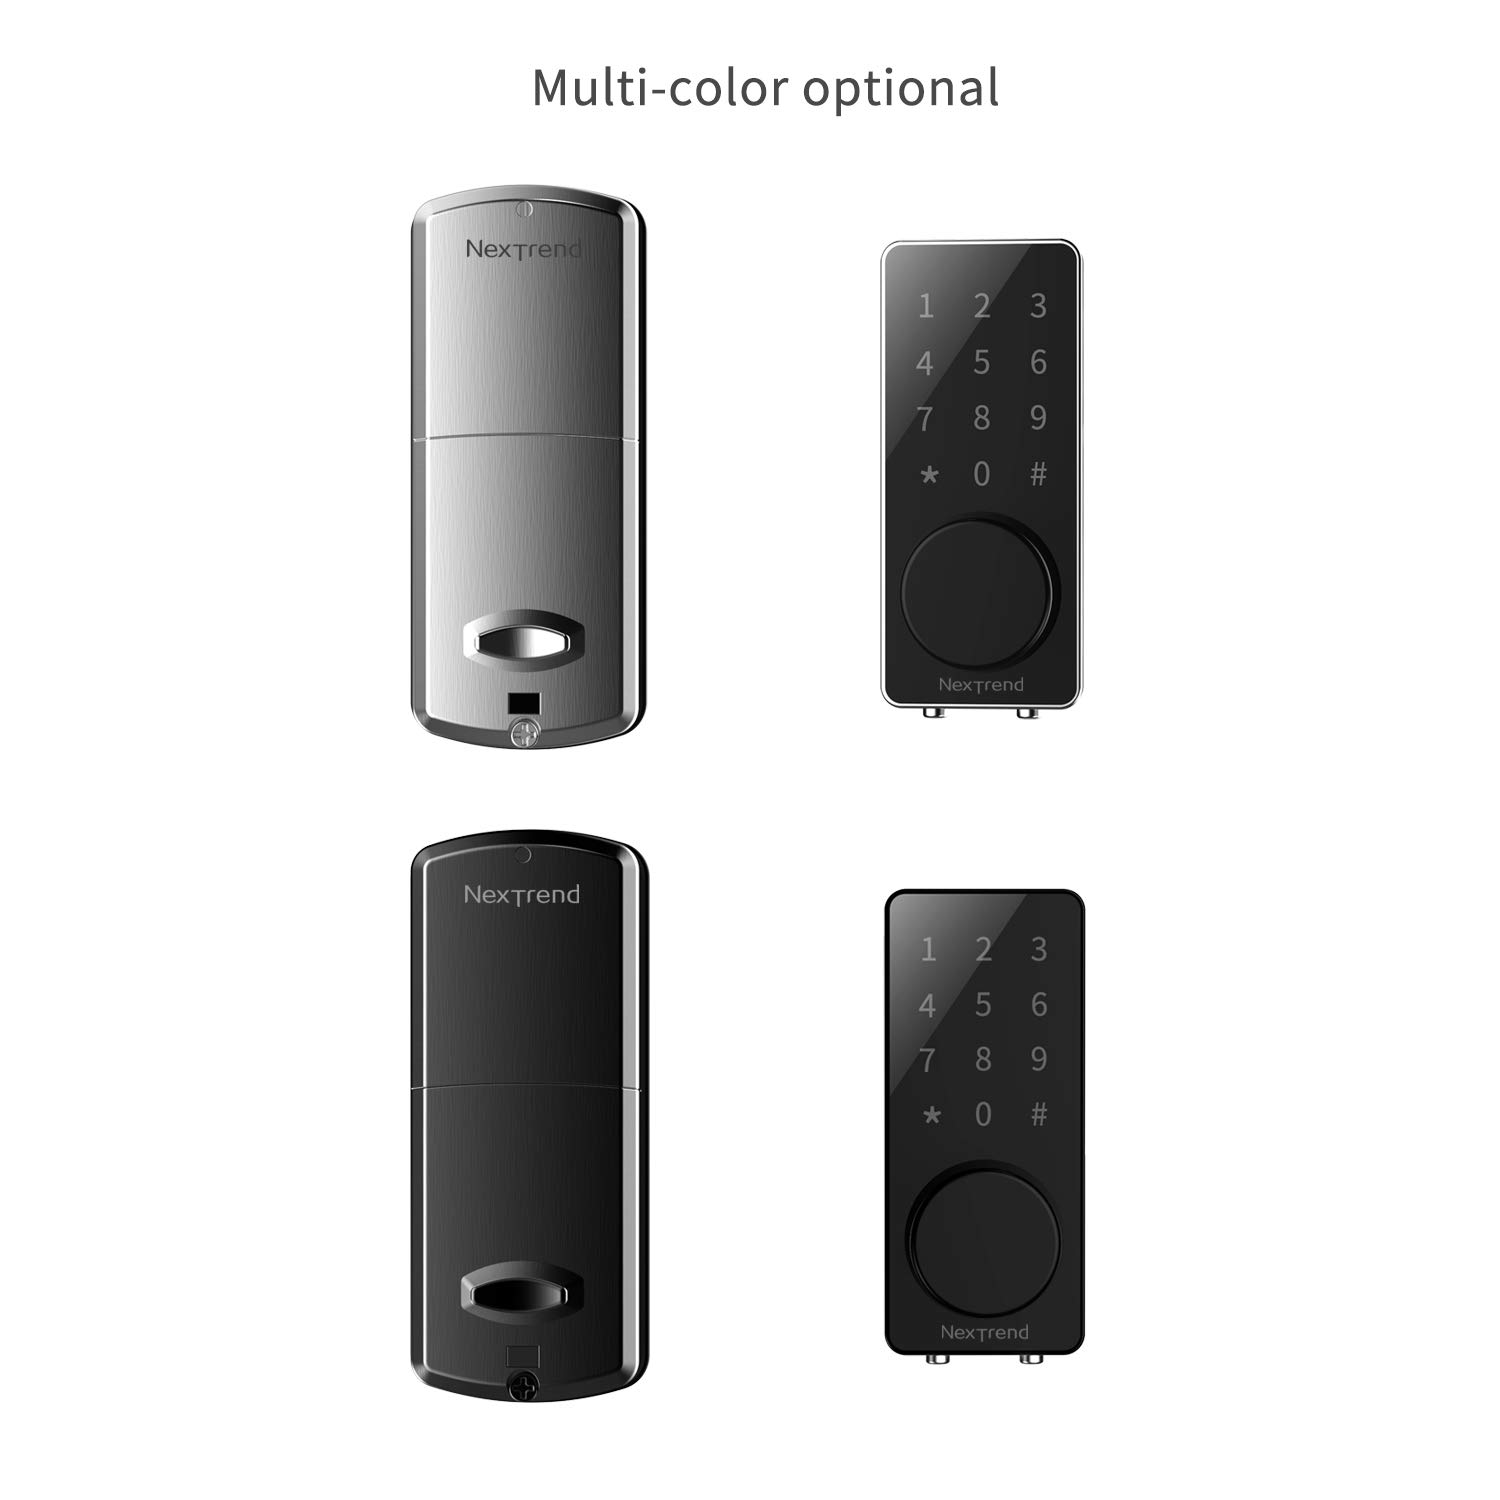 [Newest]Smart Lock, NexTrend Smart Electronic Door Lock with Bluetooth Keyless, Touchscreen, Mechanical Keys Enabled Auto Lock Alarm Technology for Home, Hotel, Apartment, Silver by NexTrend (Image #7)